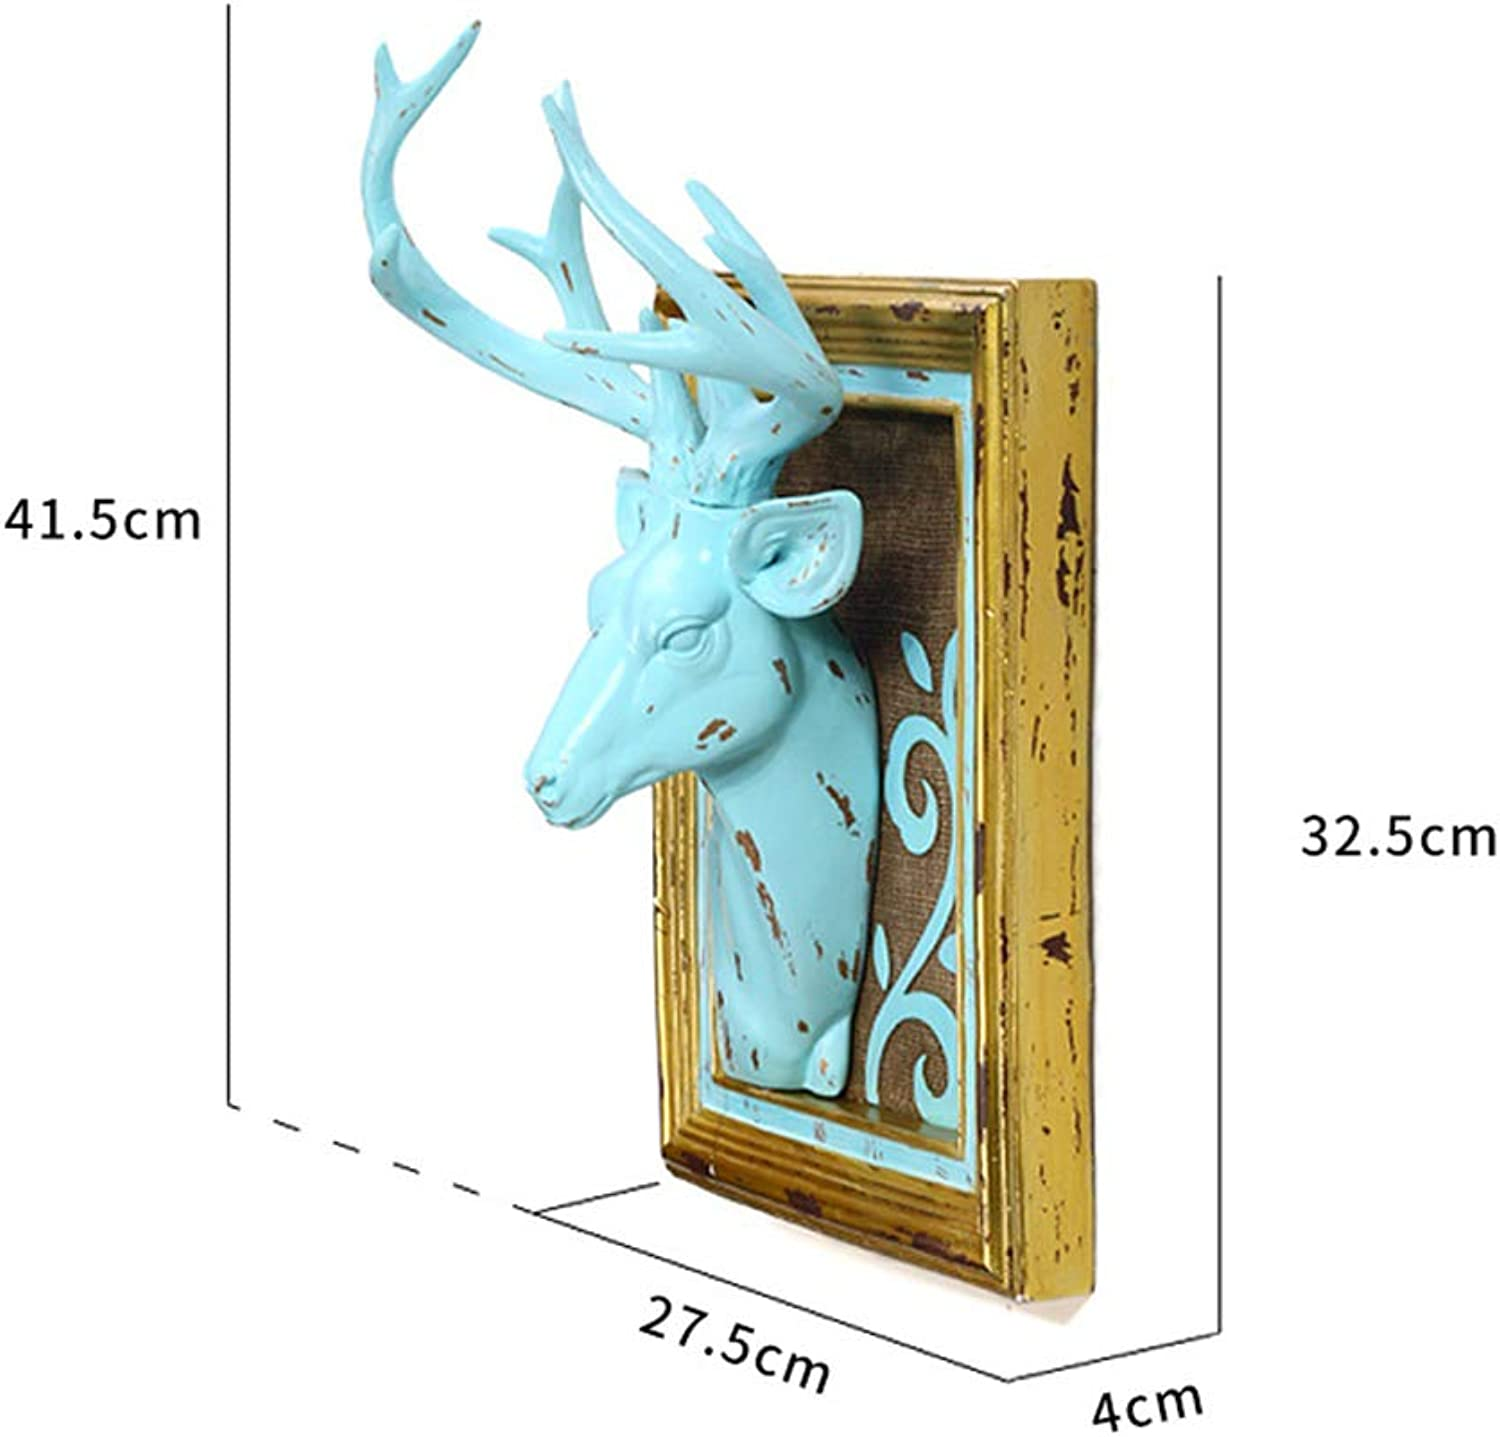 Wall Wall Hanging Natural Resin Deer Head Wall Painted Decoration Simple Modern Home Bedroom Decoration 2 colors,bluee